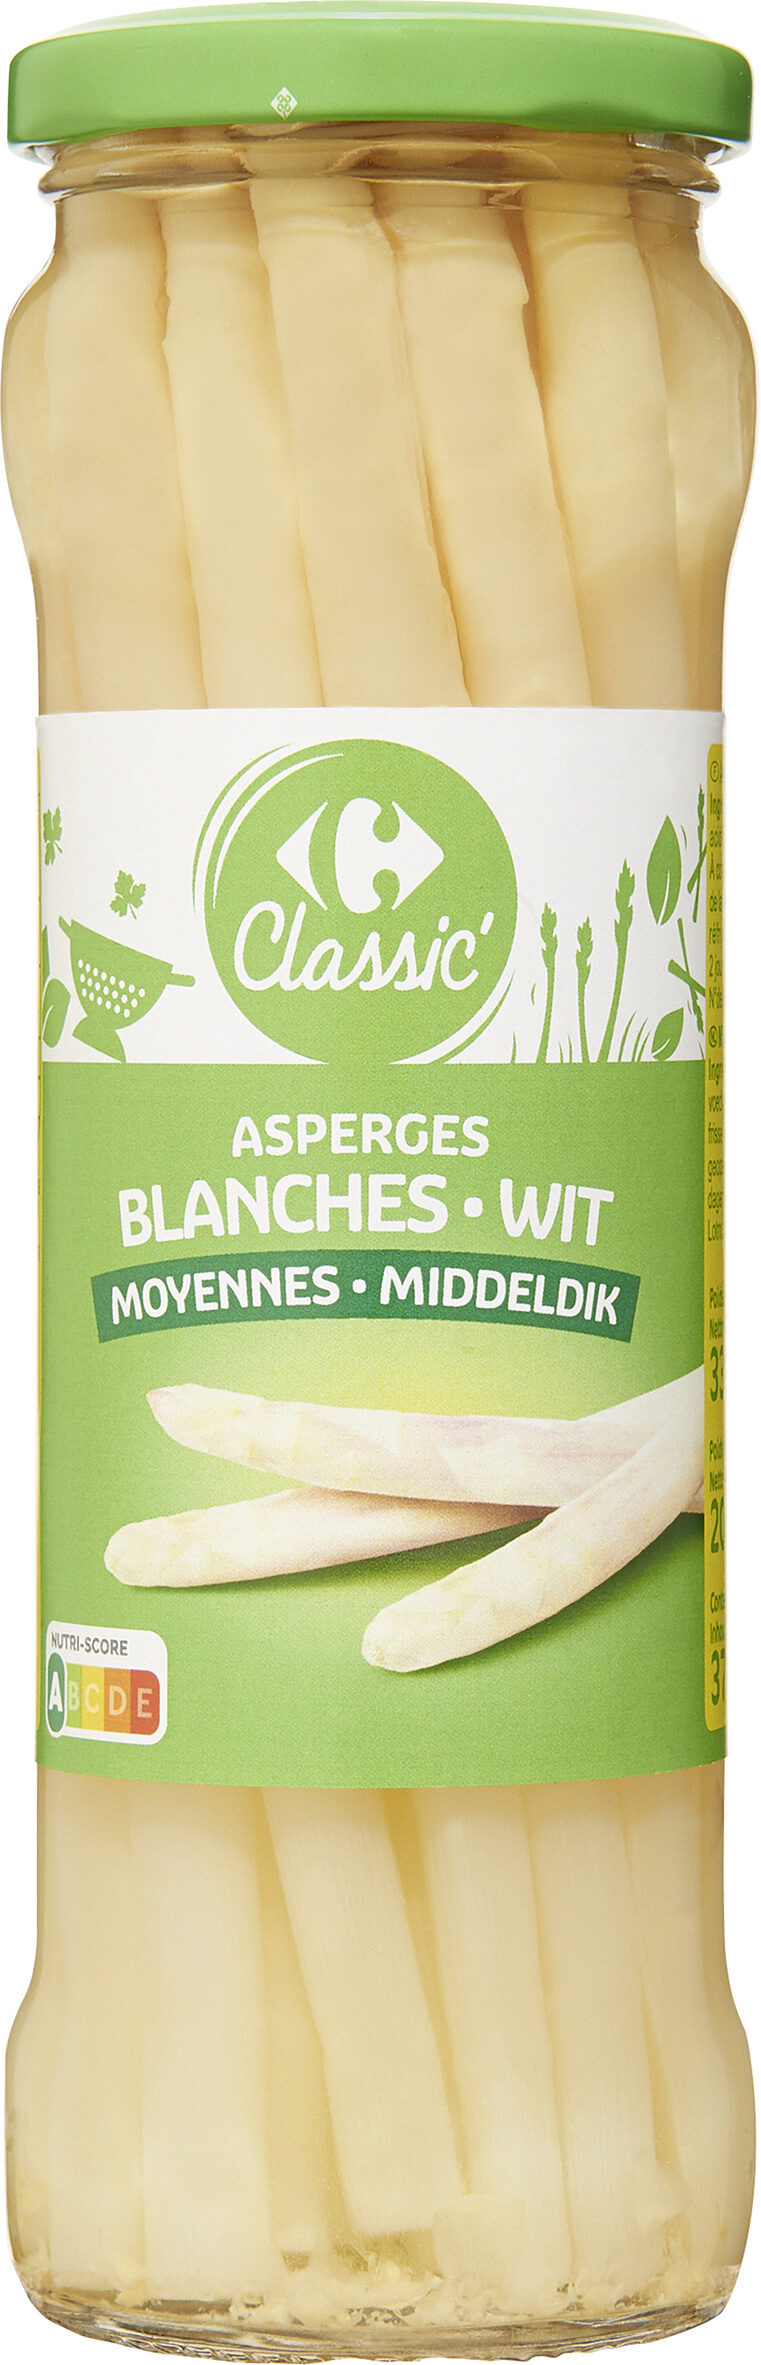 Asperges blanches grosses - Product - fr